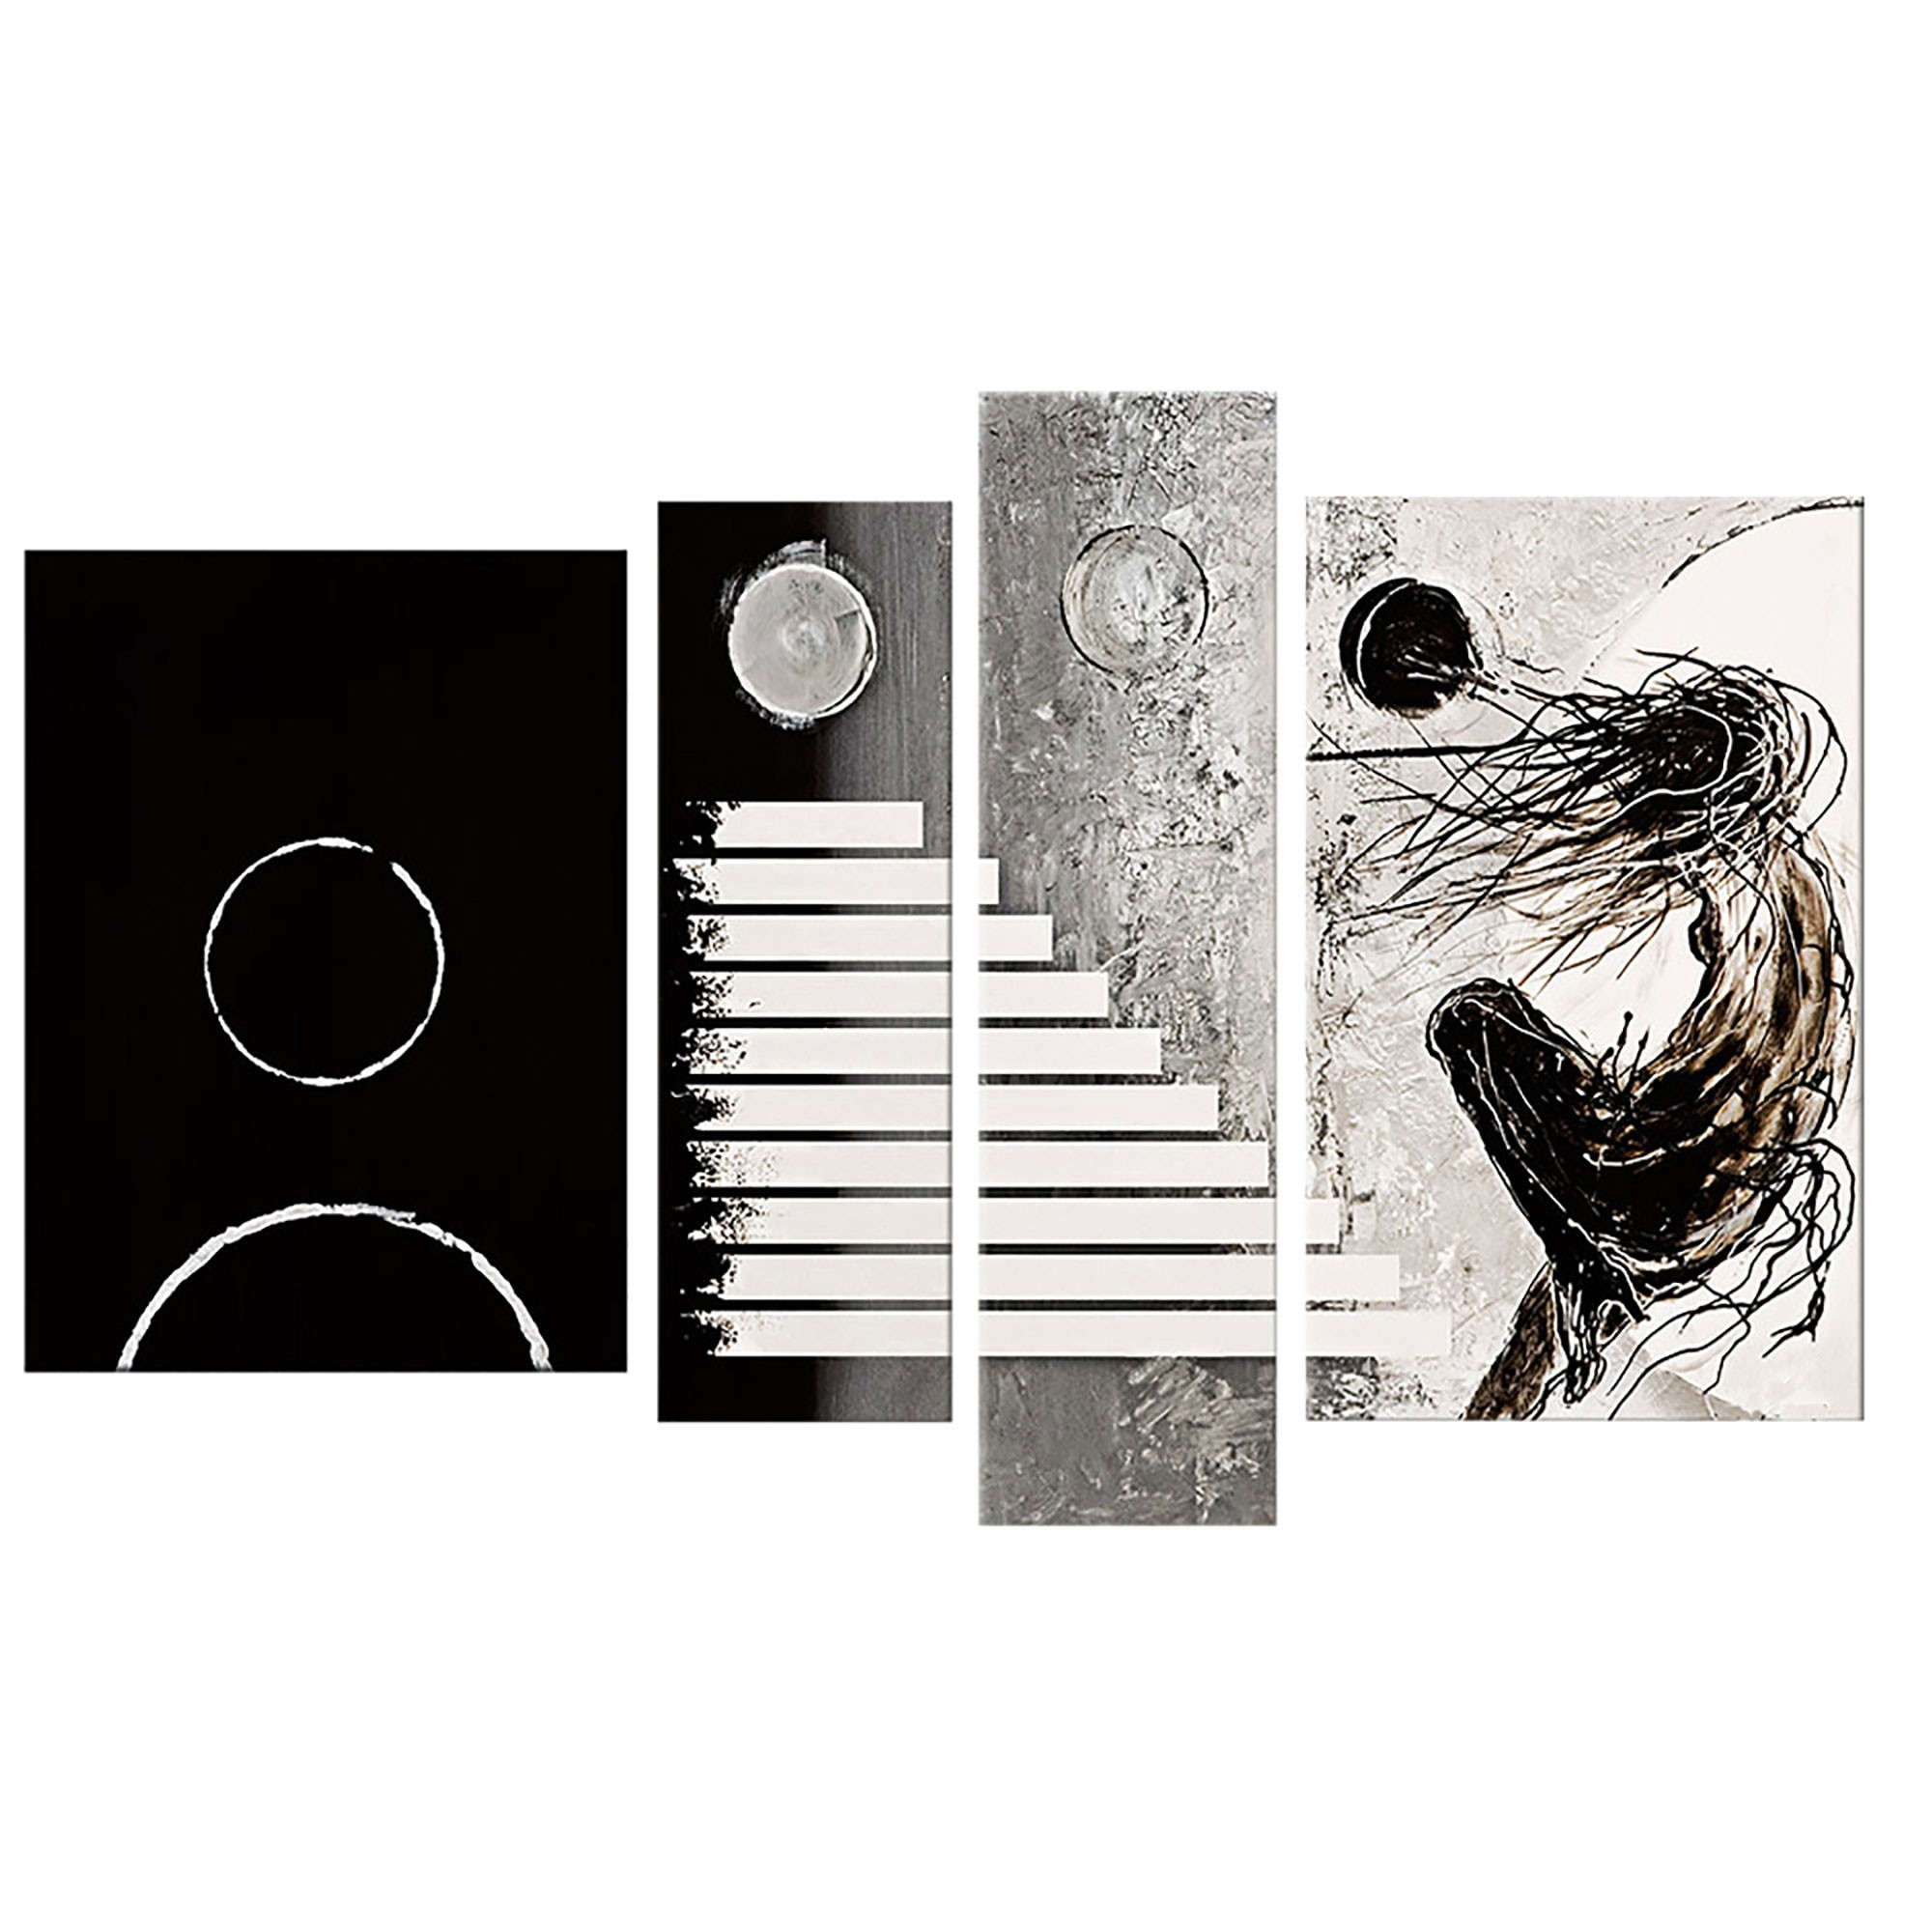 Wall Art Designs: Black And White Canvas Wall Art Black White With Regard To Most Up To Date Black And White Canvas Wall Art (View 12 of 15)